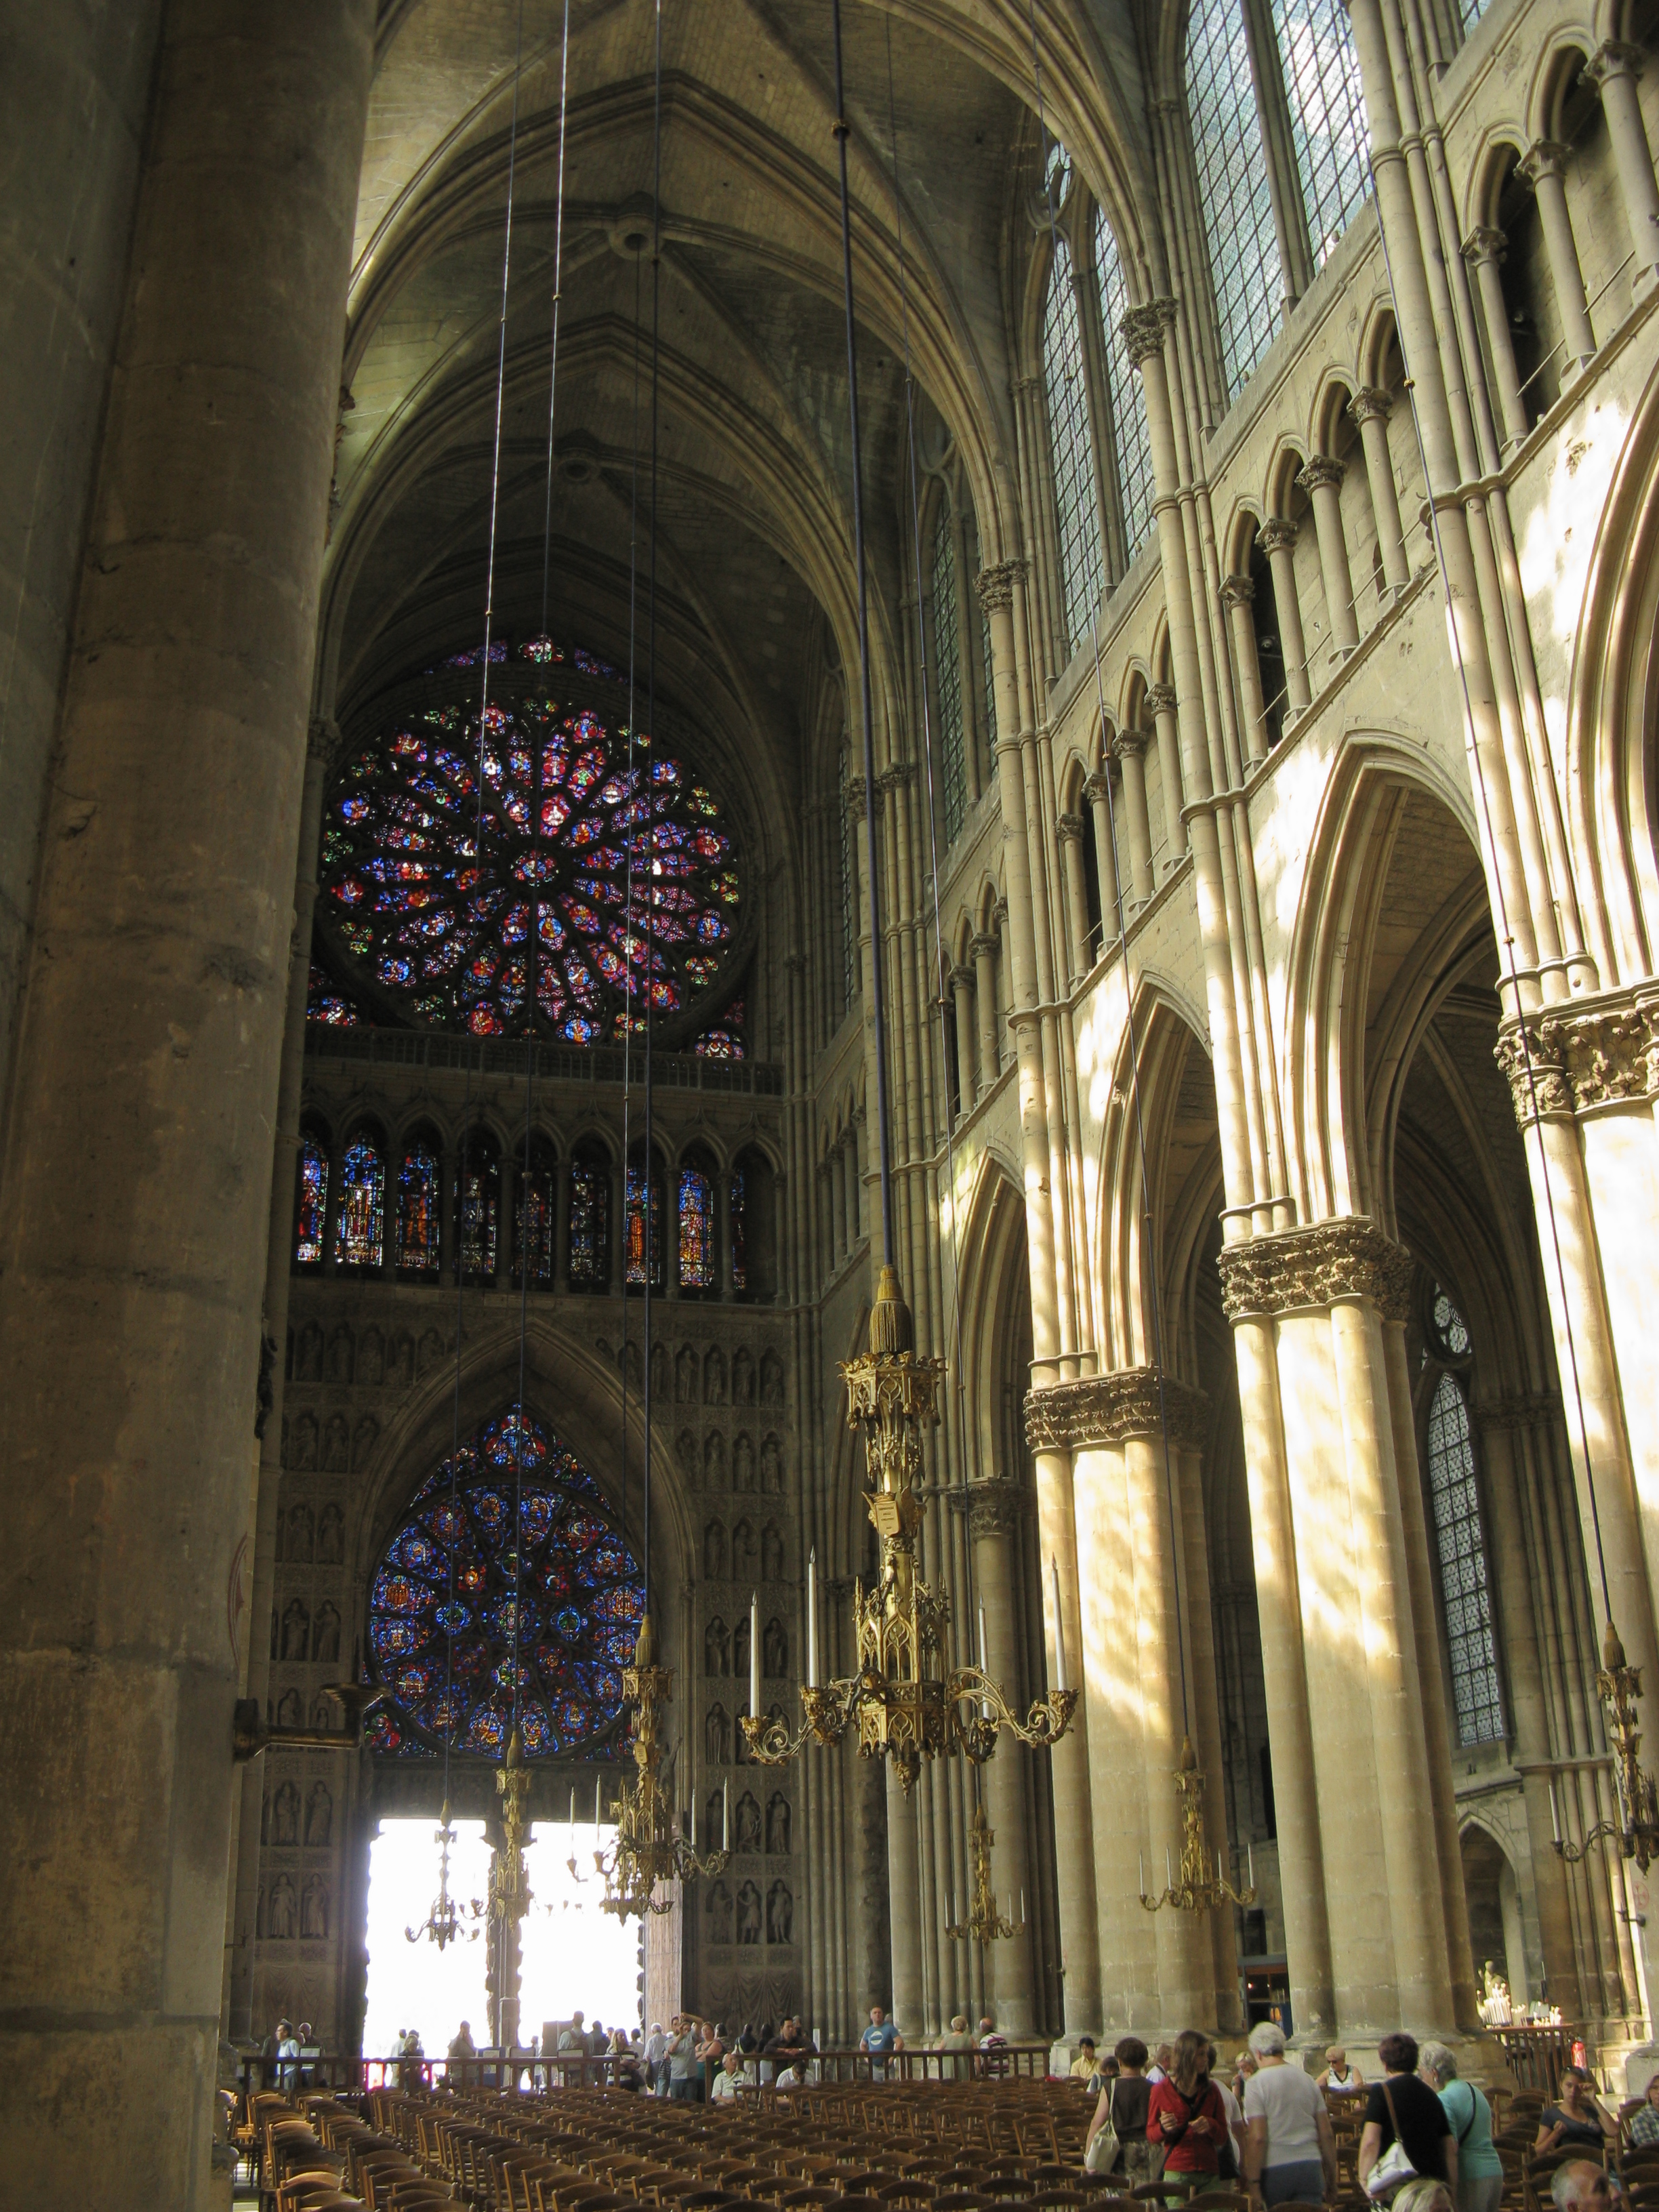 File:Reims Cathedral nave interior.JPG